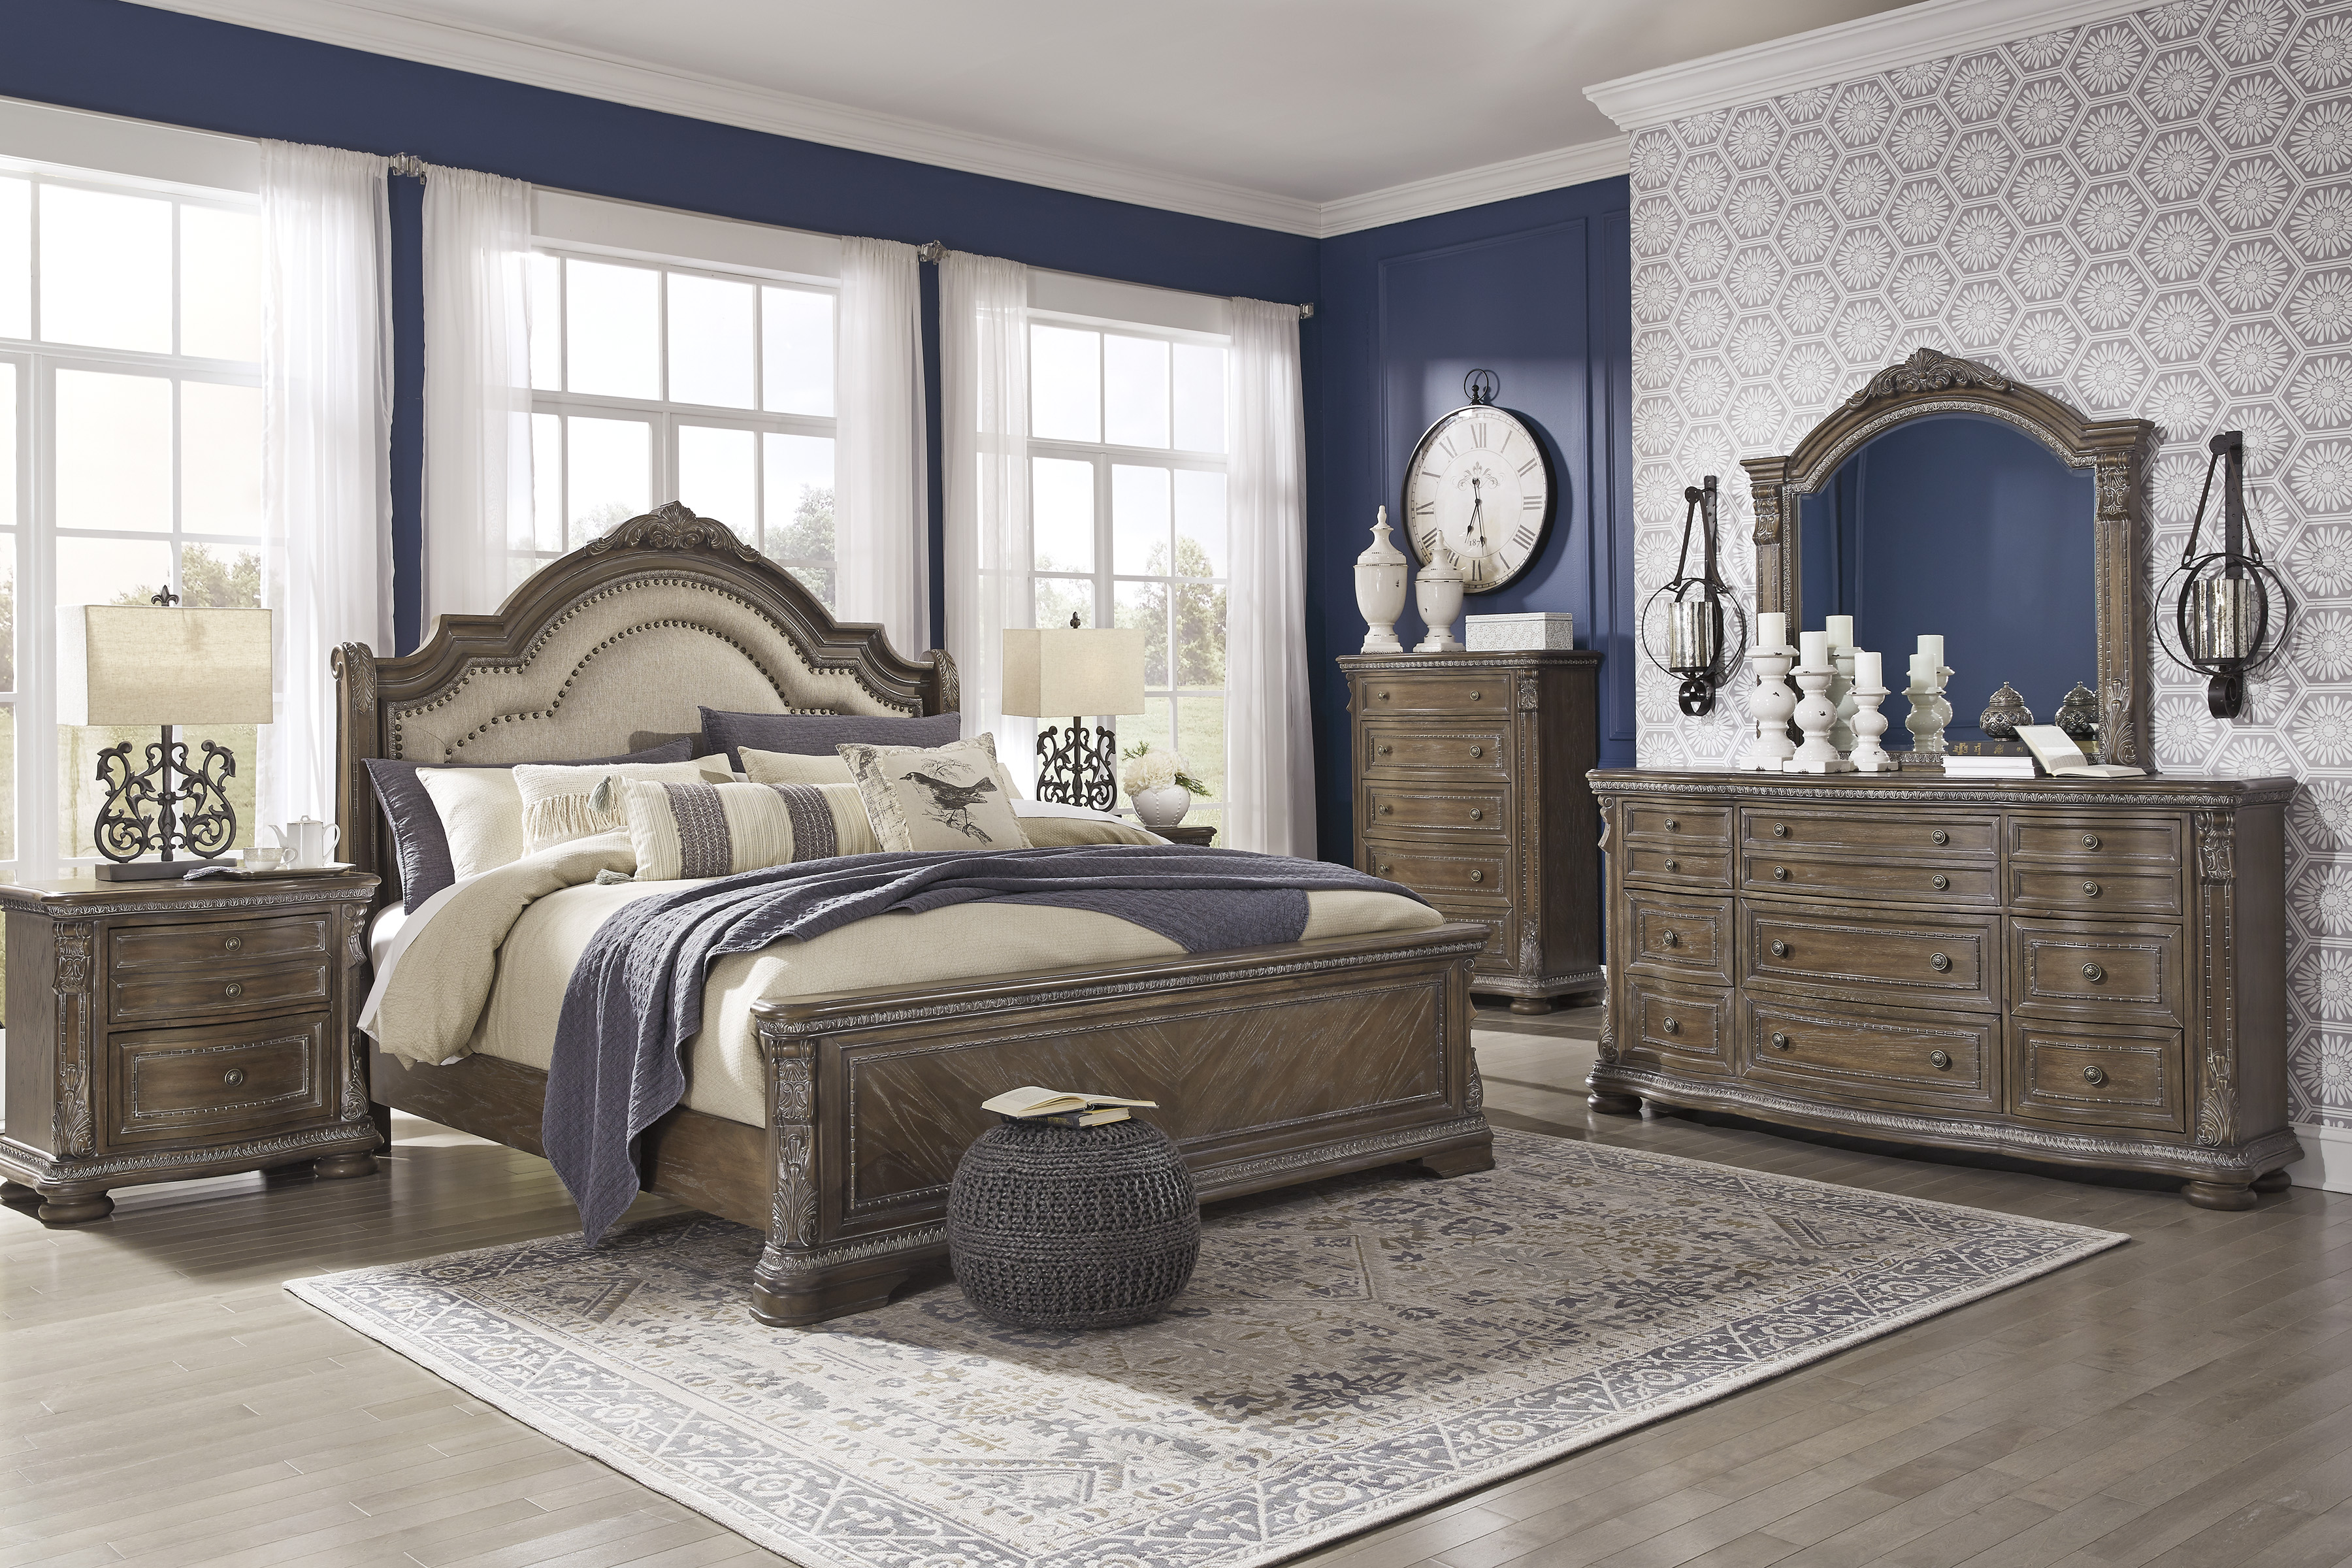 The Charmond Upholstered Bedroom Collection Miami Direct Furniture